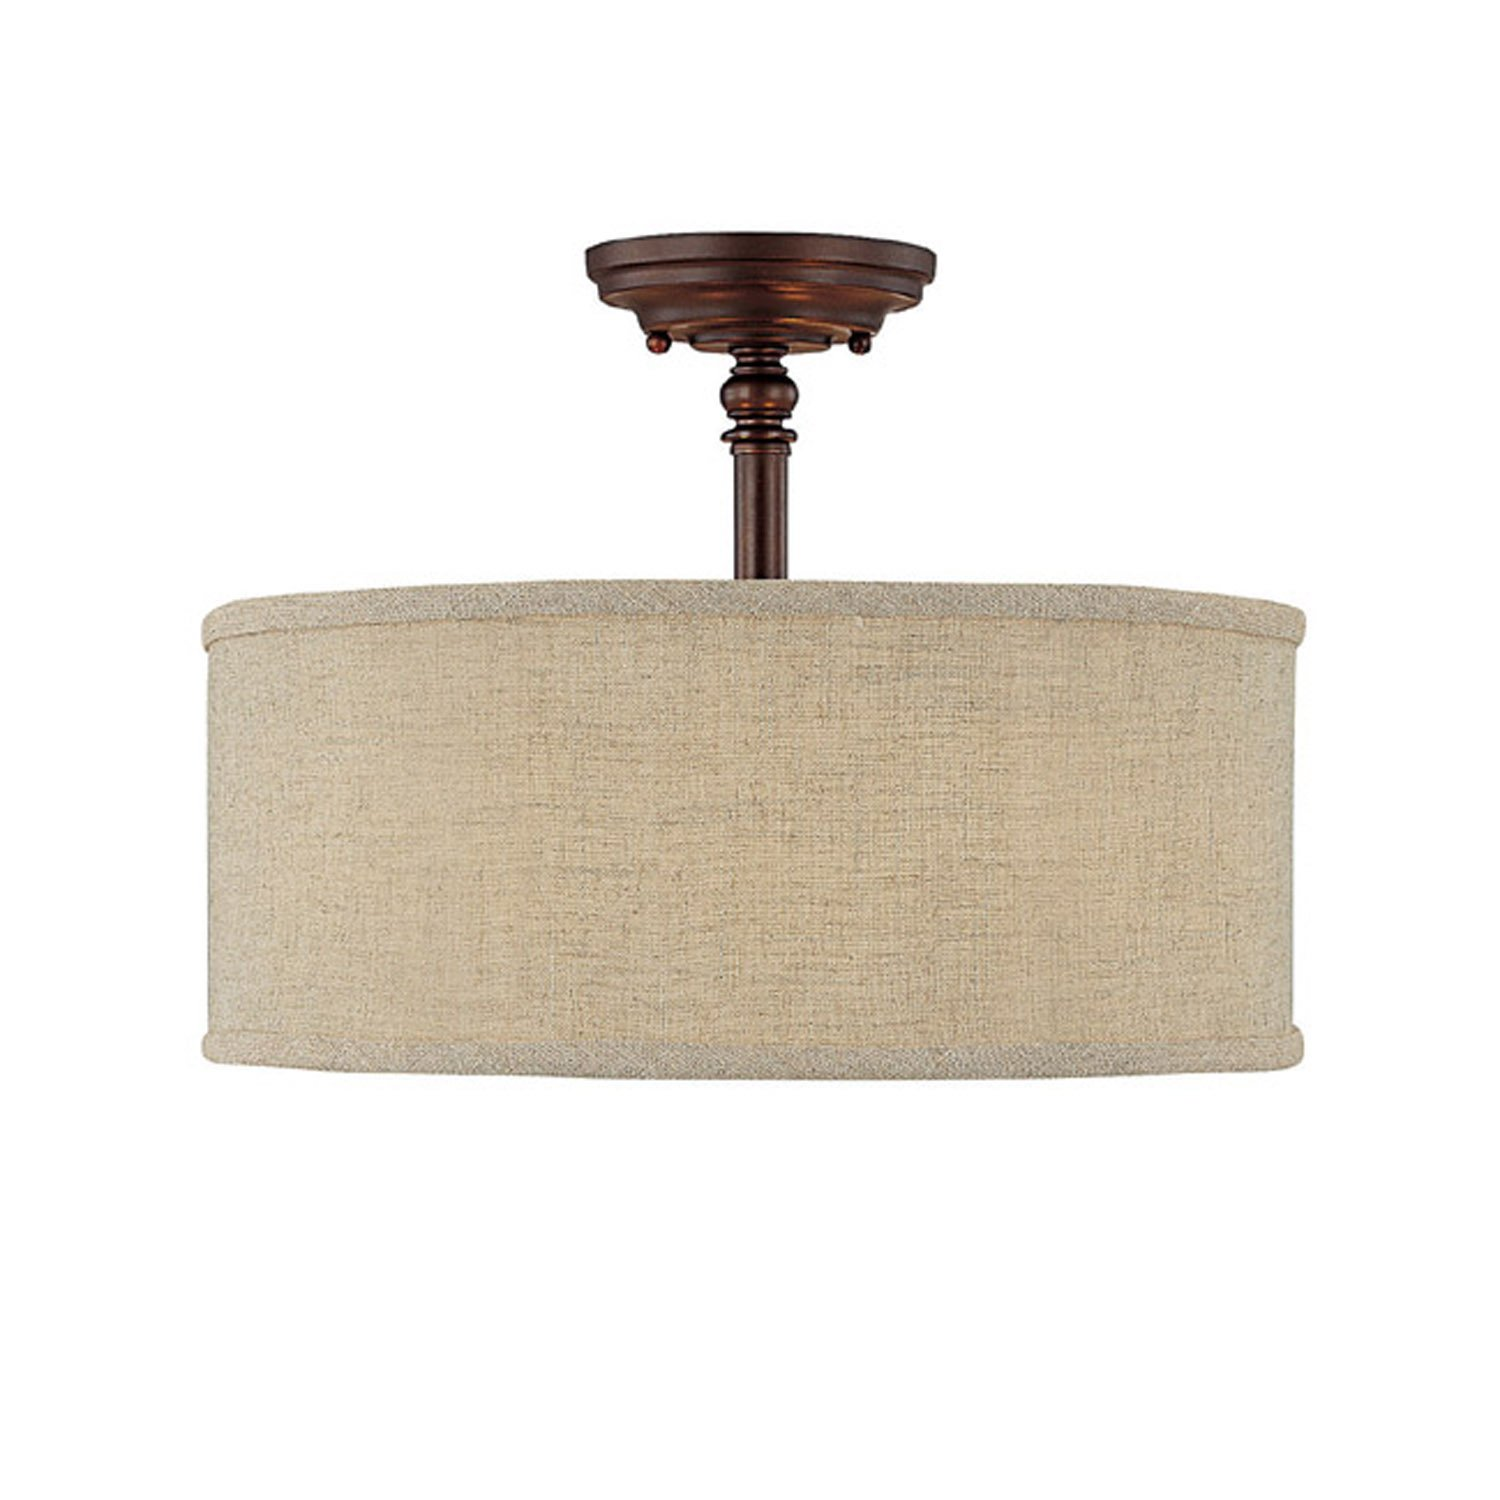 Capital lighting 3923bb 479 semi flush mount with beige fabric capital lighting 3923bb 479 semi flush mount with beige fabric shades burnished bronze finish semi flush mount ceiling light fixtures amazon arubaitofo Image collections